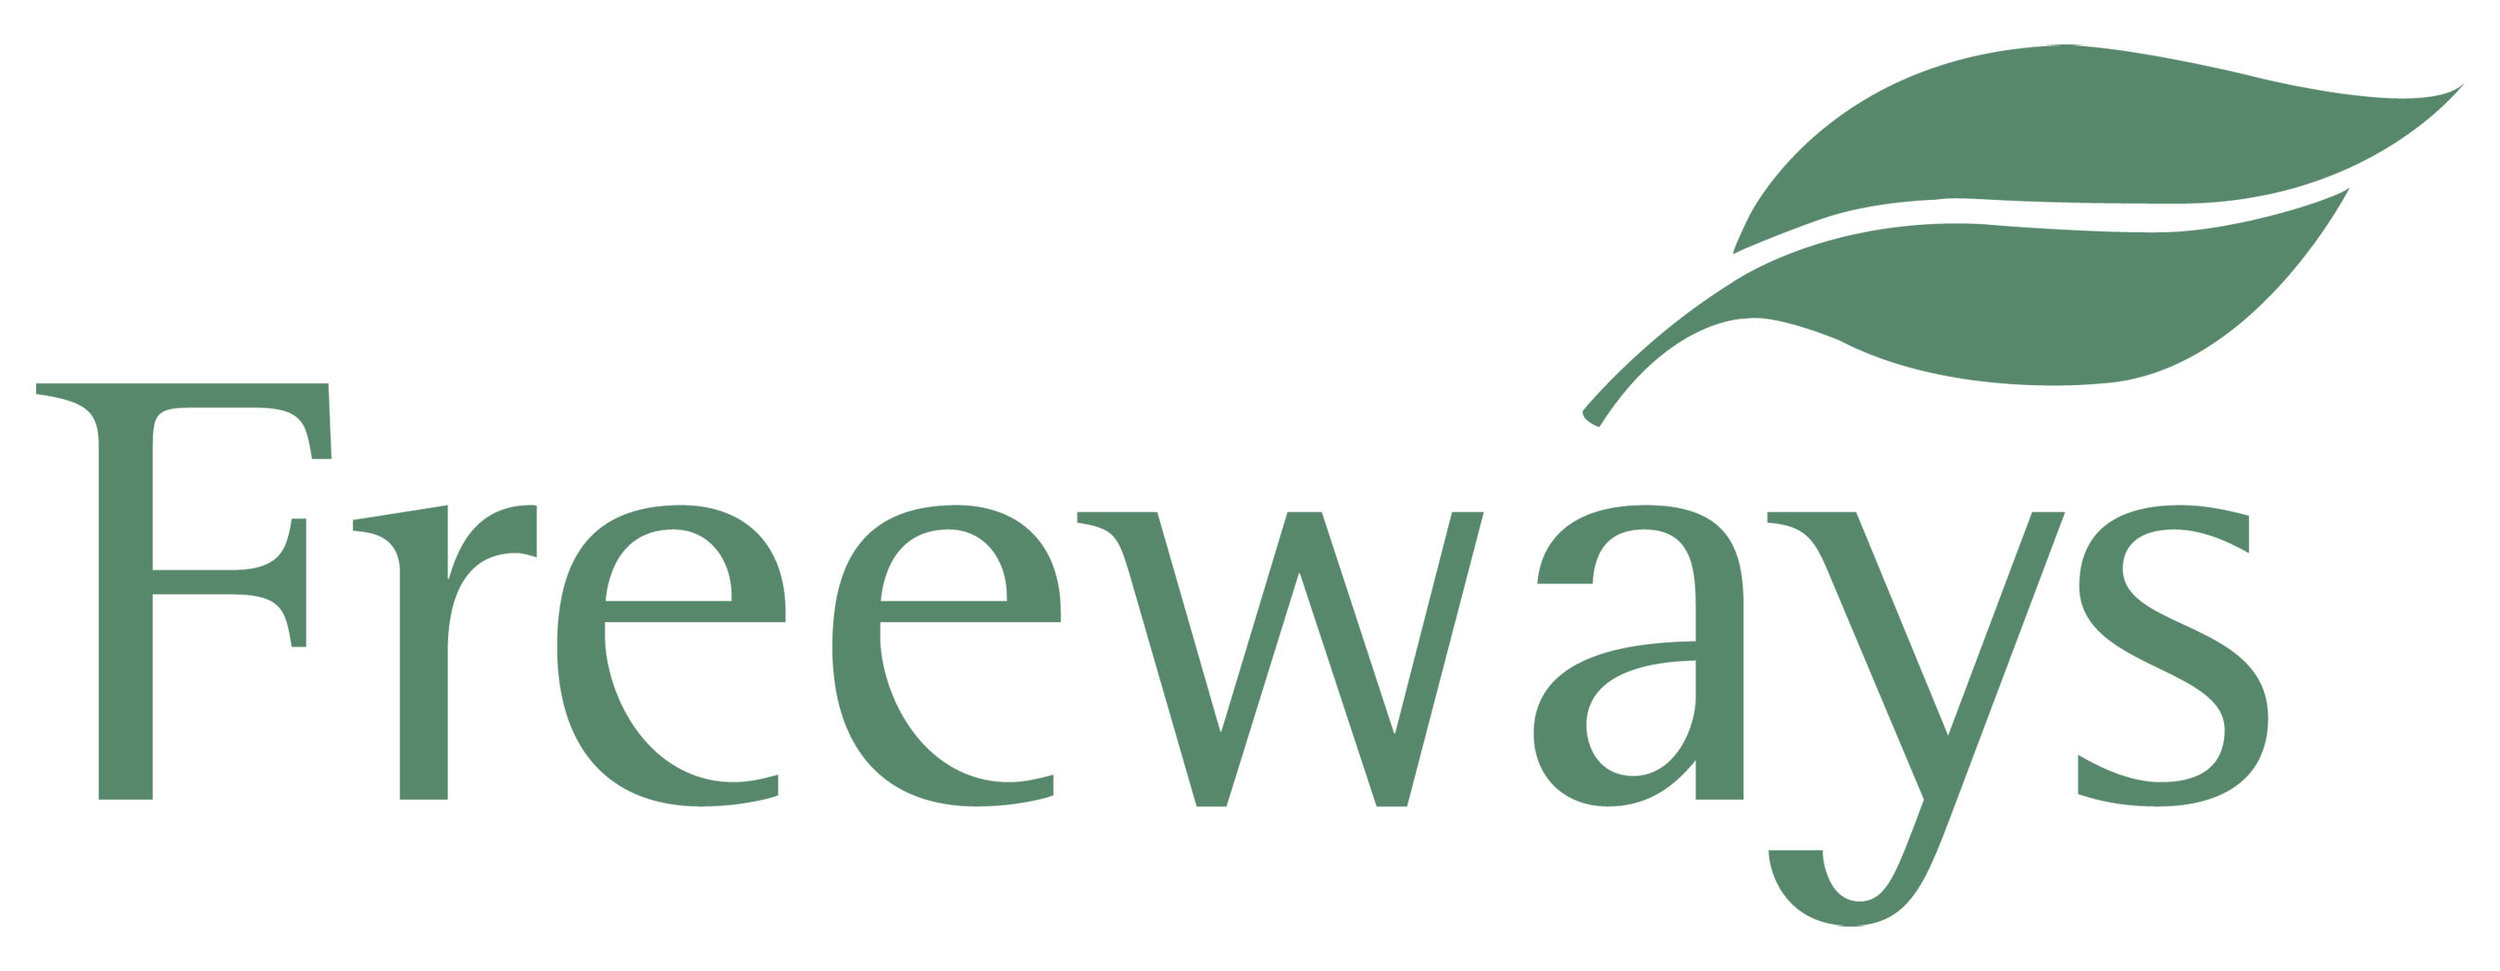 freeways-logo.jpg